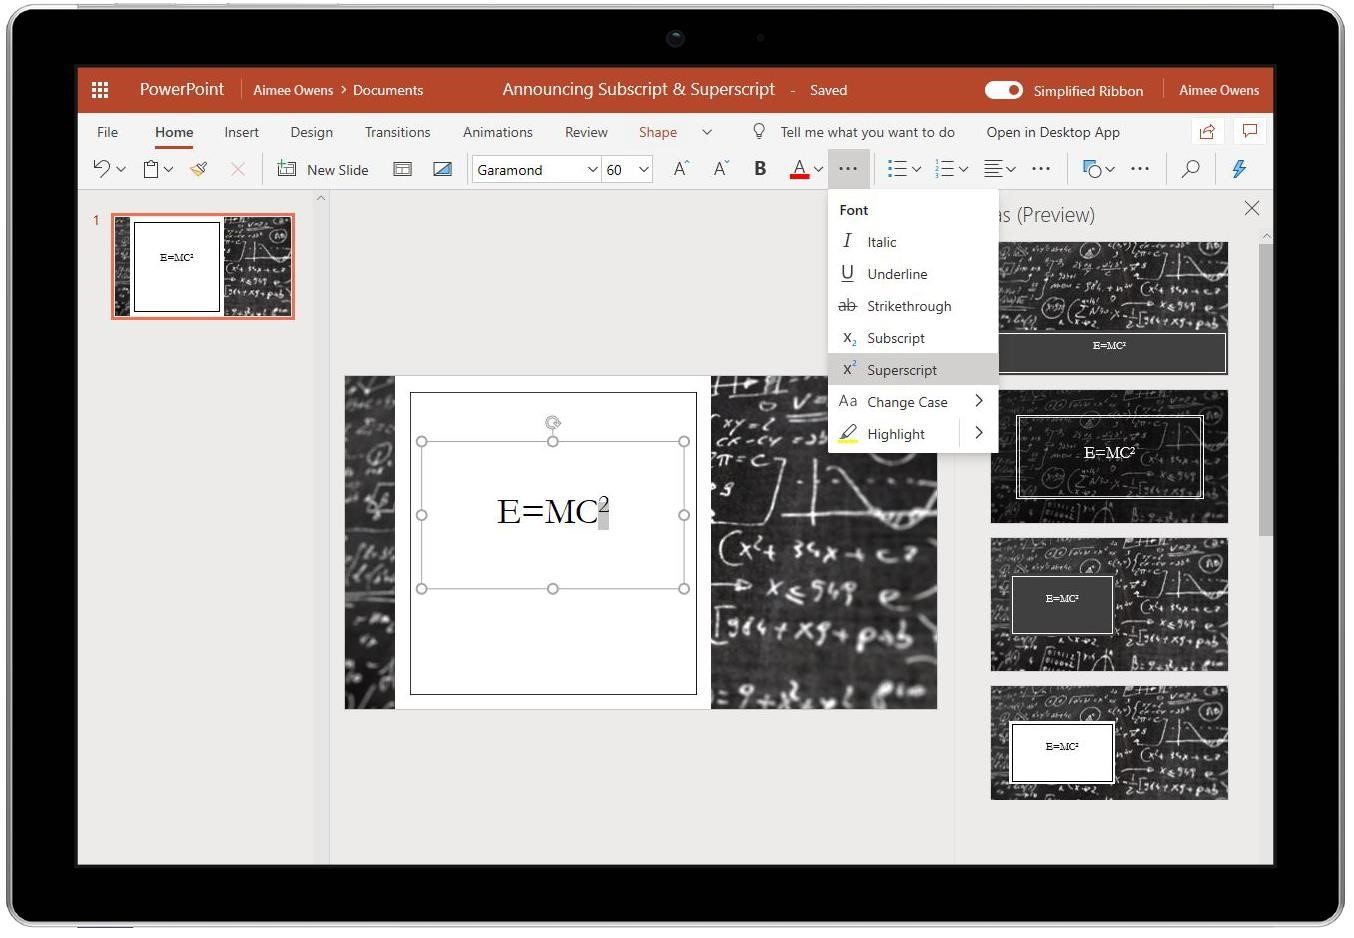 New for PowerPoint on the web